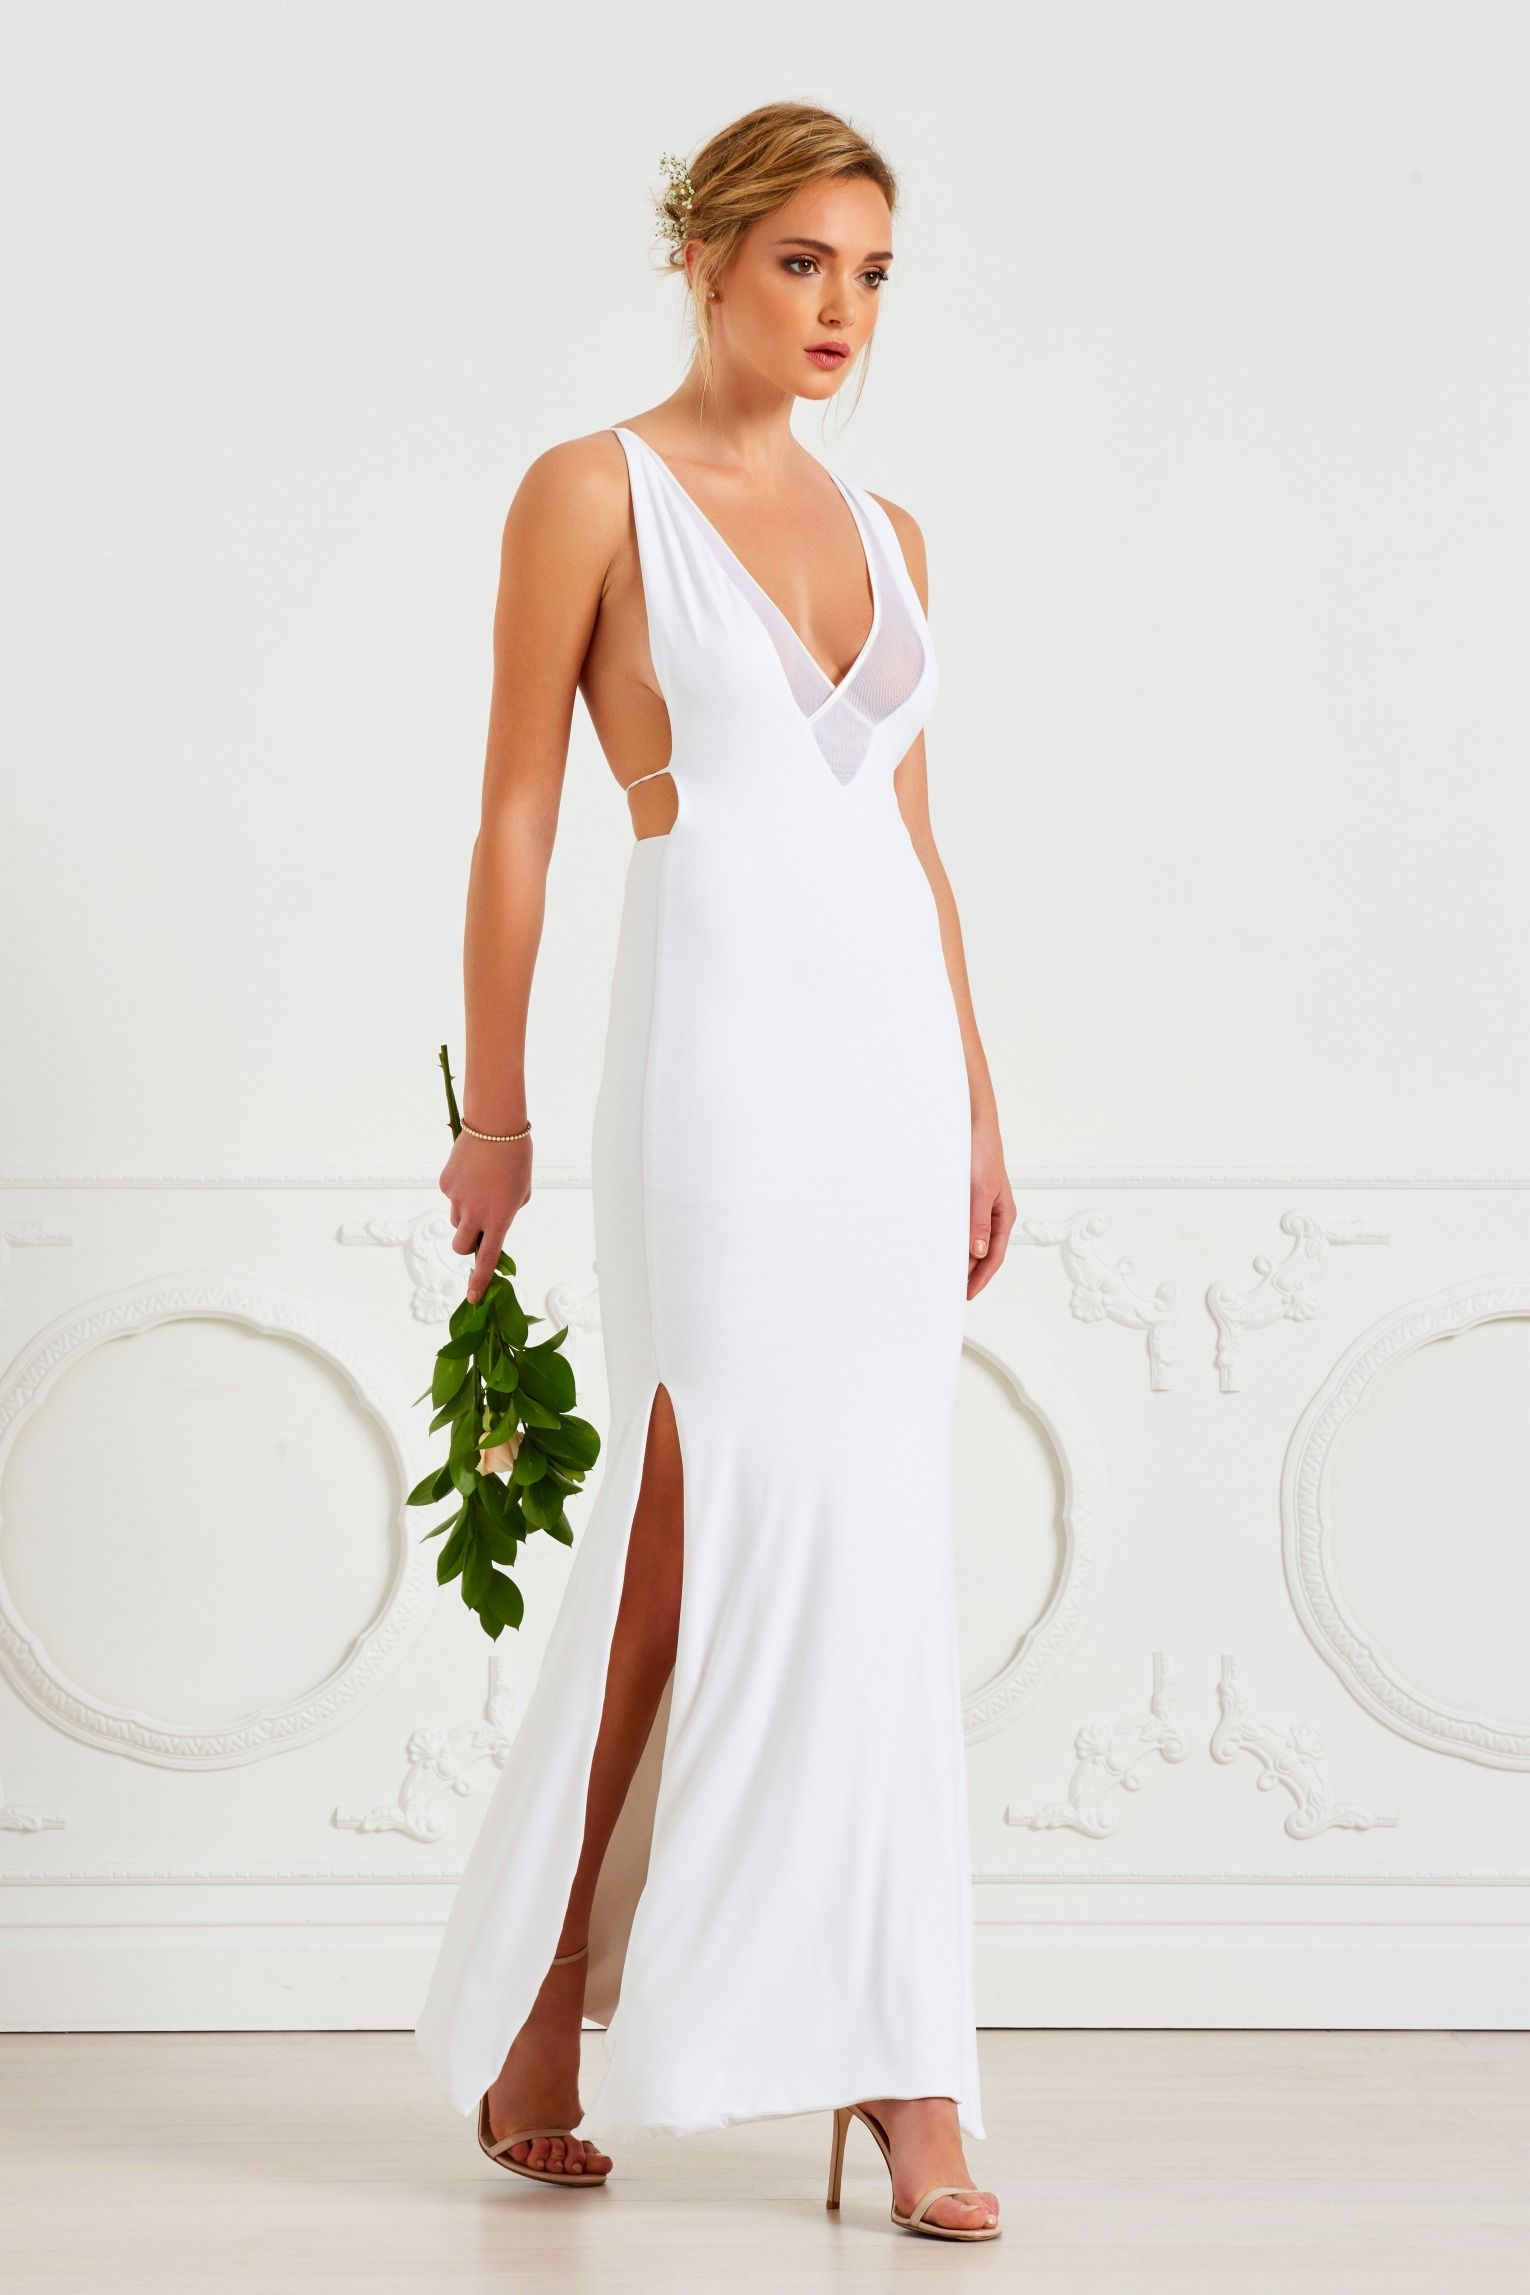 Gemeli Power Dupeyroux Jersey Gown In White From Revolve Com Stylish Wedding Dresses Dresses Gowns Revolving stage for wedding superbly complement your shows and deliver a stunning experience similar to none other. pinterest